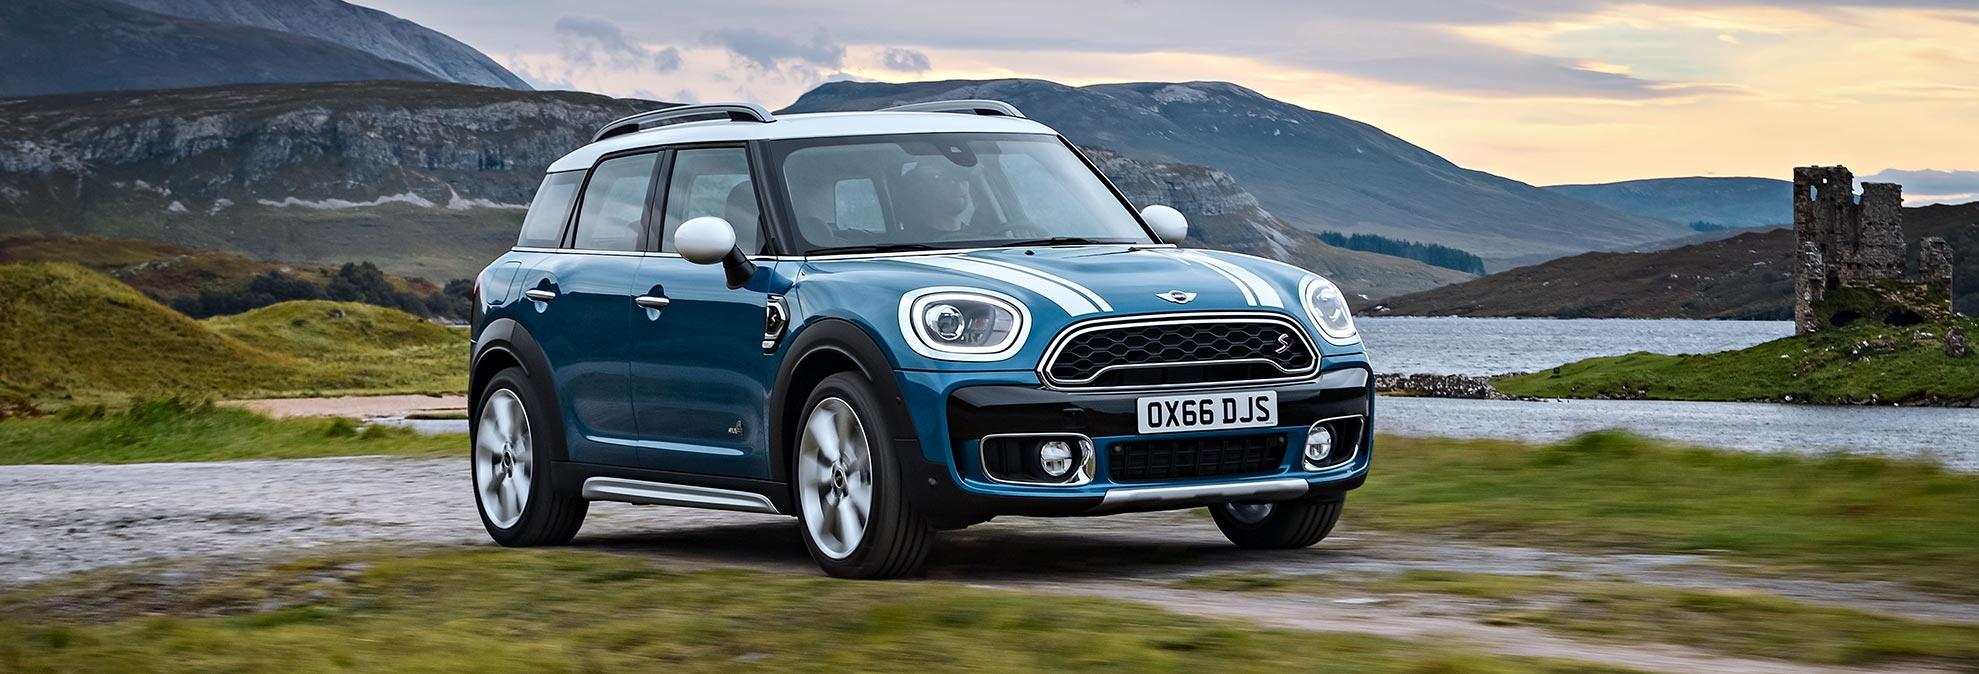 2017 Mini Countryman Grows Bigger And Gains Part Time